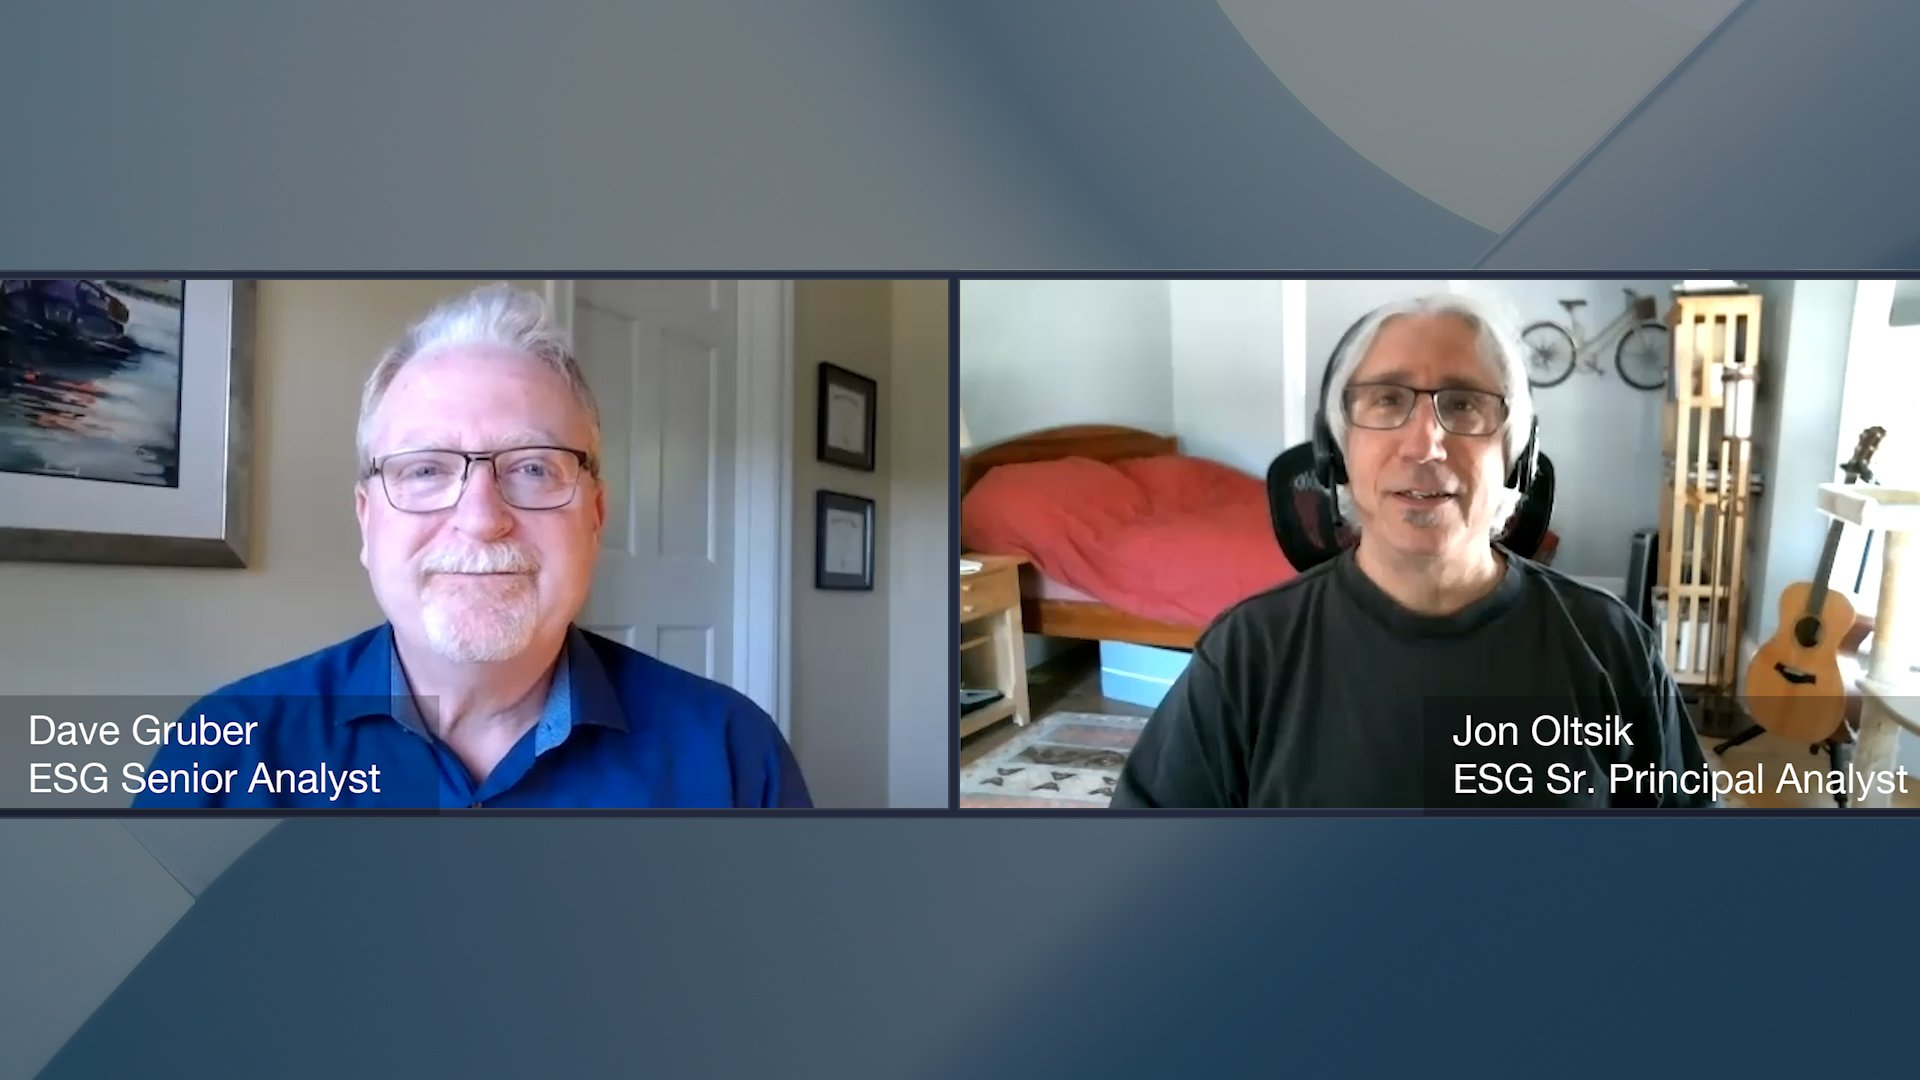 SOAPA Discussion On EDR and XDR With Jon Oltsik and Dave Gruber (Video), Part 3